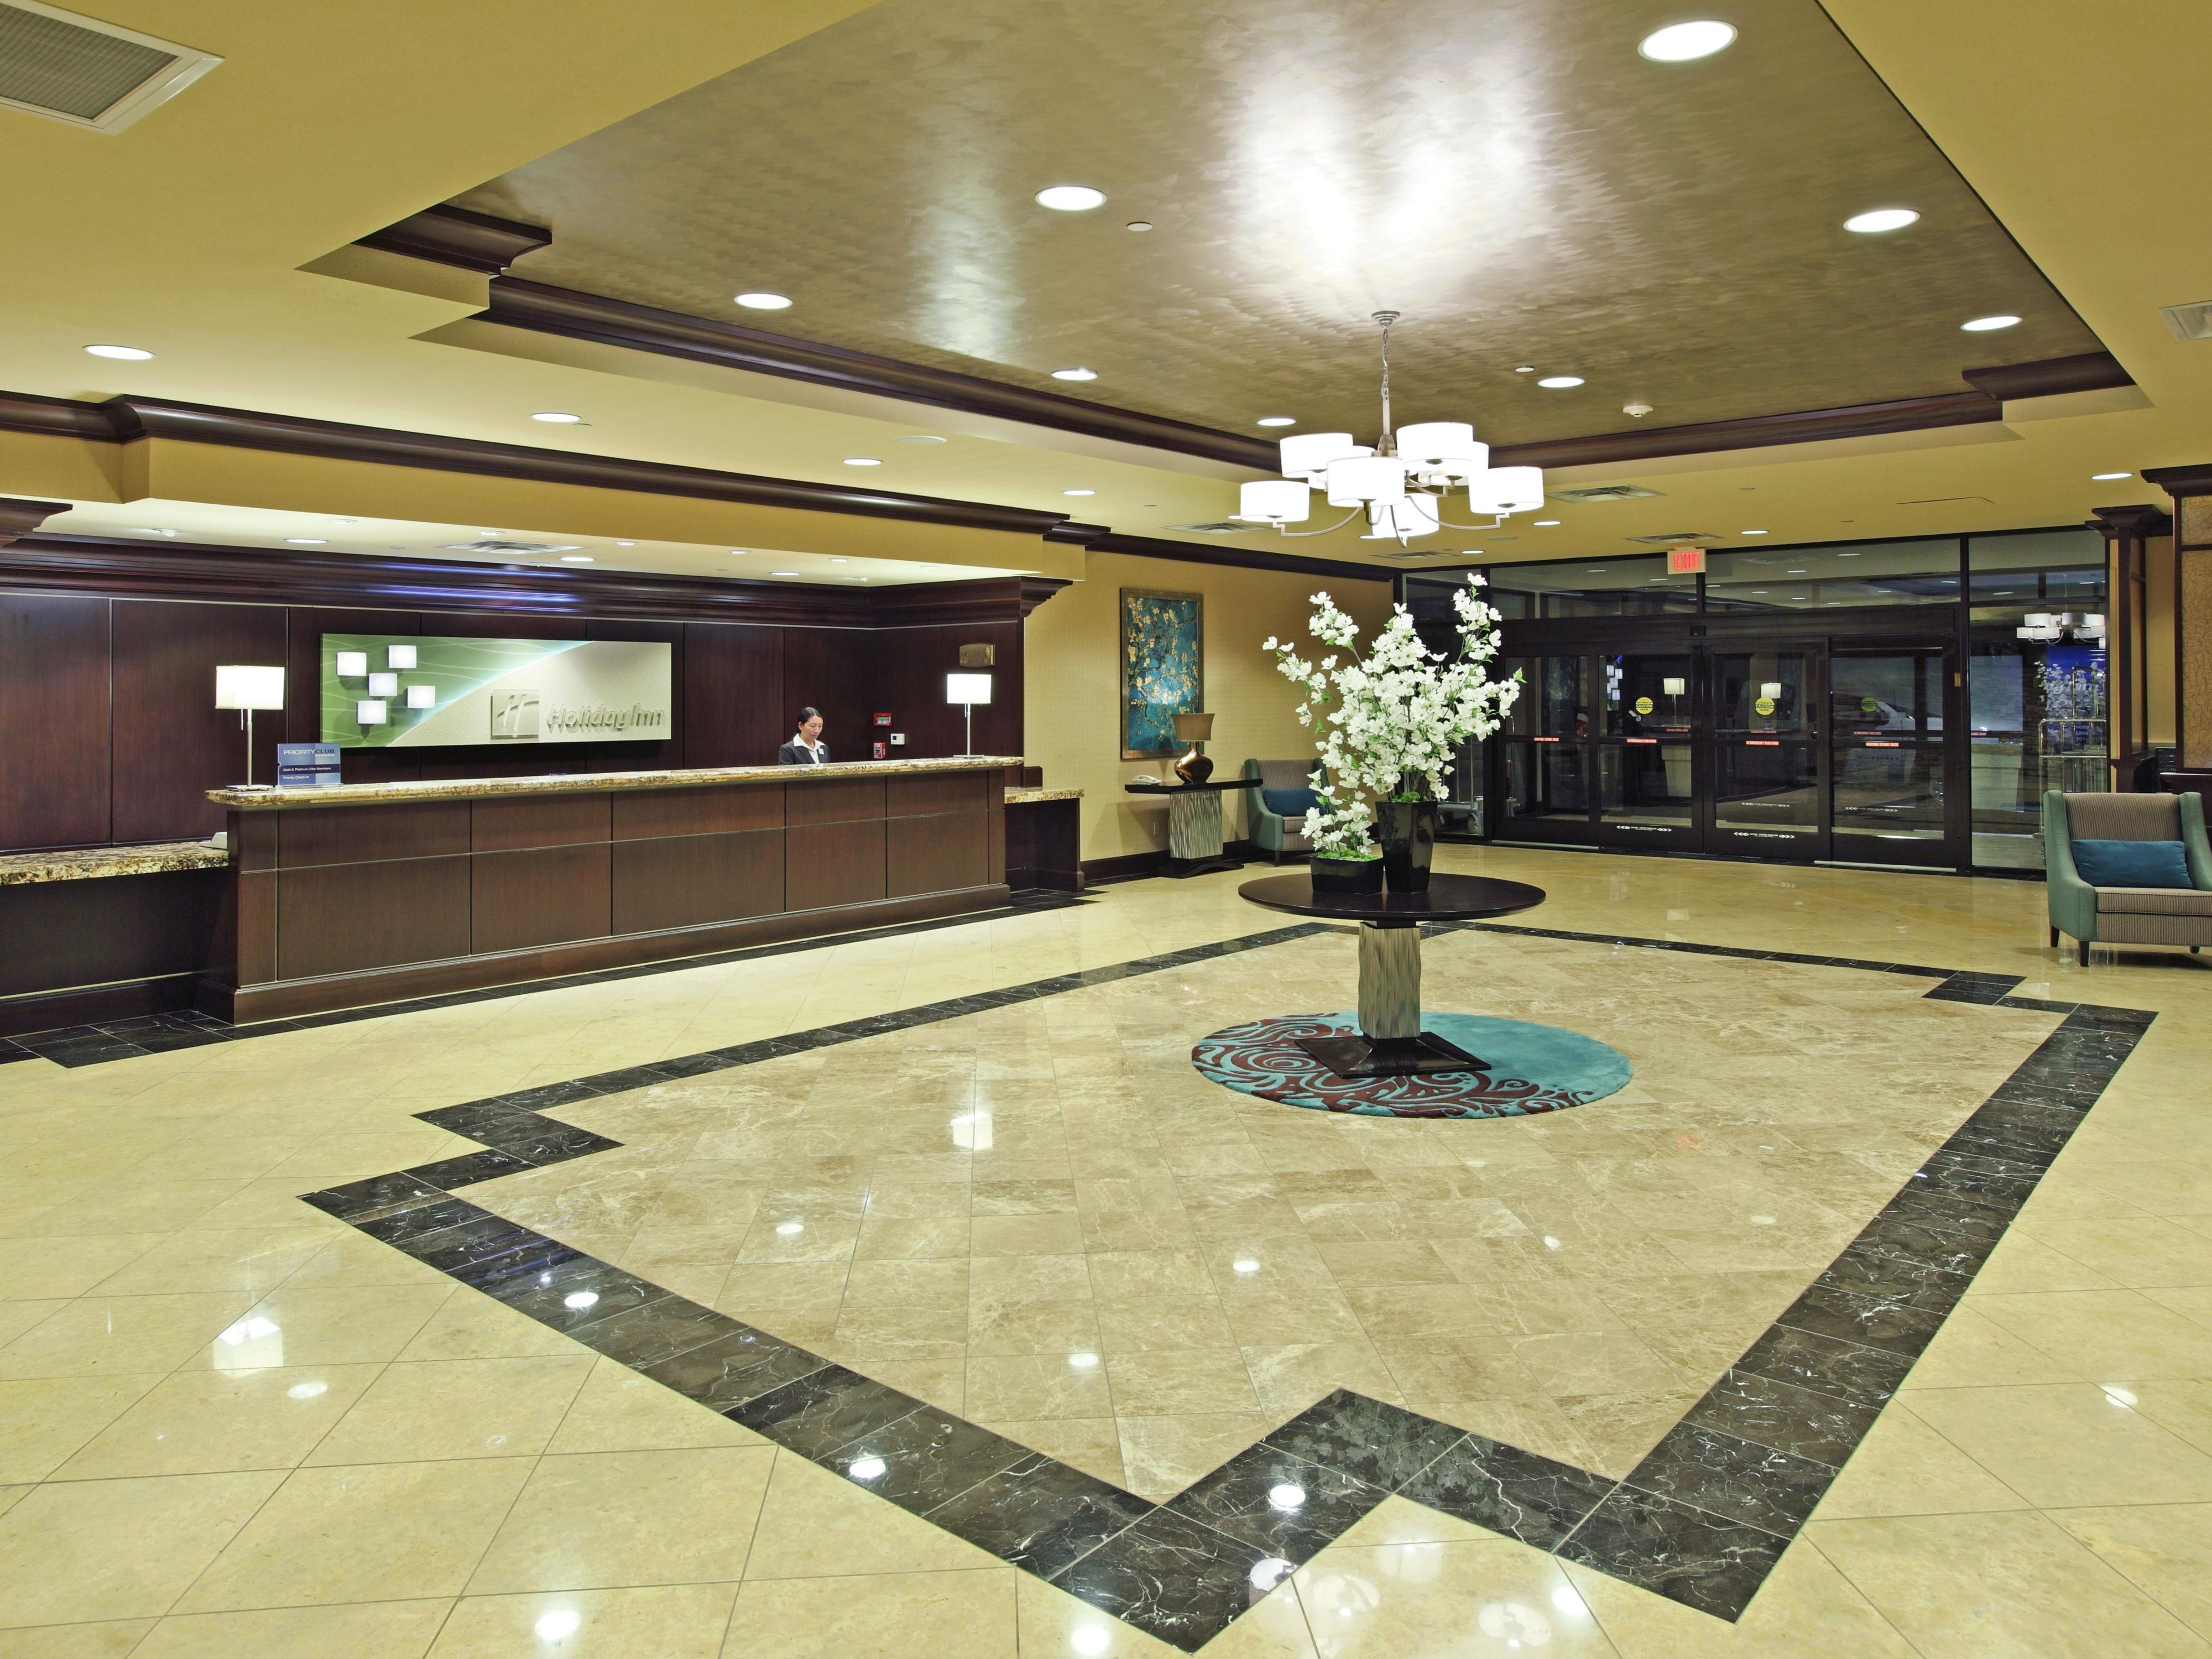 Marble and class set the feel of elegance in the lobby.